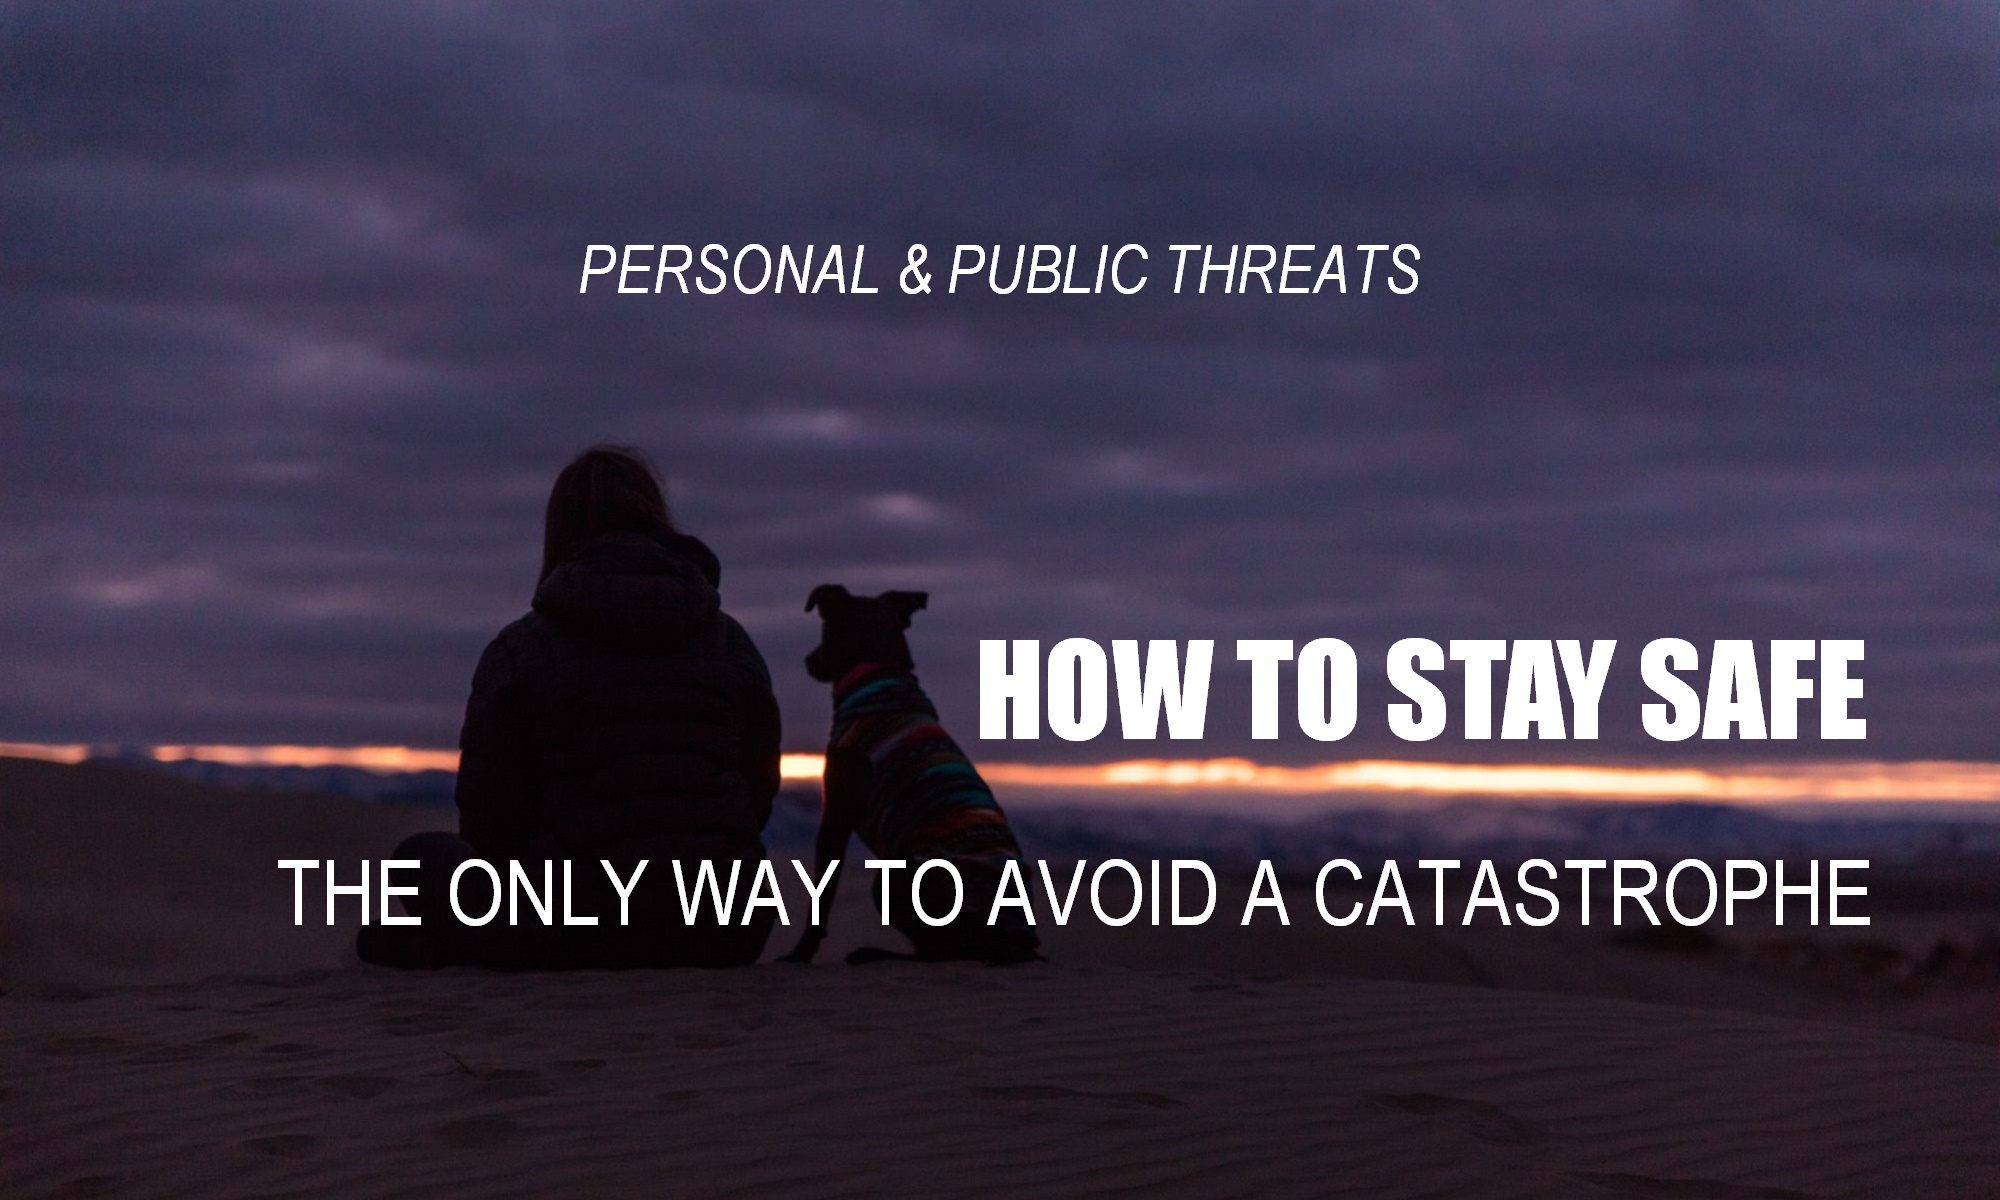 Woman on beach at sunset is safe. Learn how to stay safe. The only way to avoid a catastrophe and create a safe future.